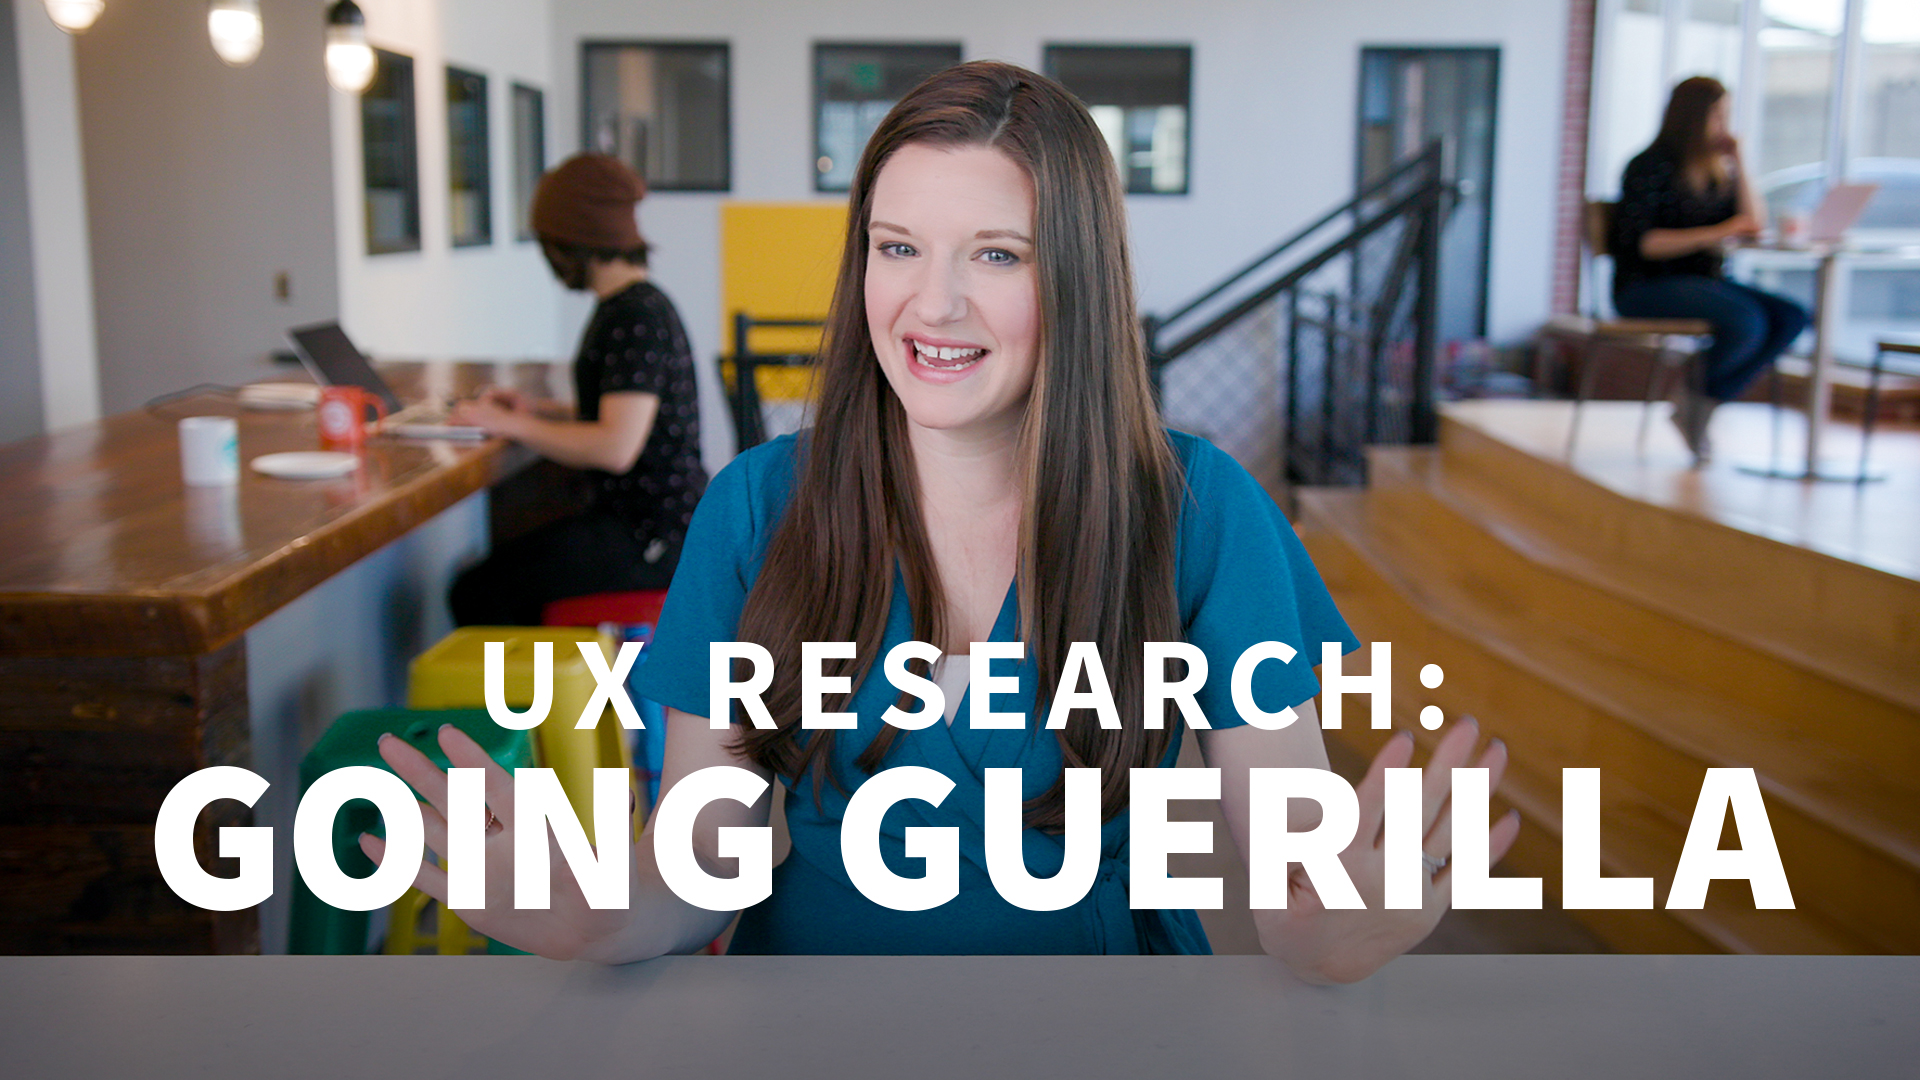 What is guerrilla research?: UX Research: Going Guerrilla